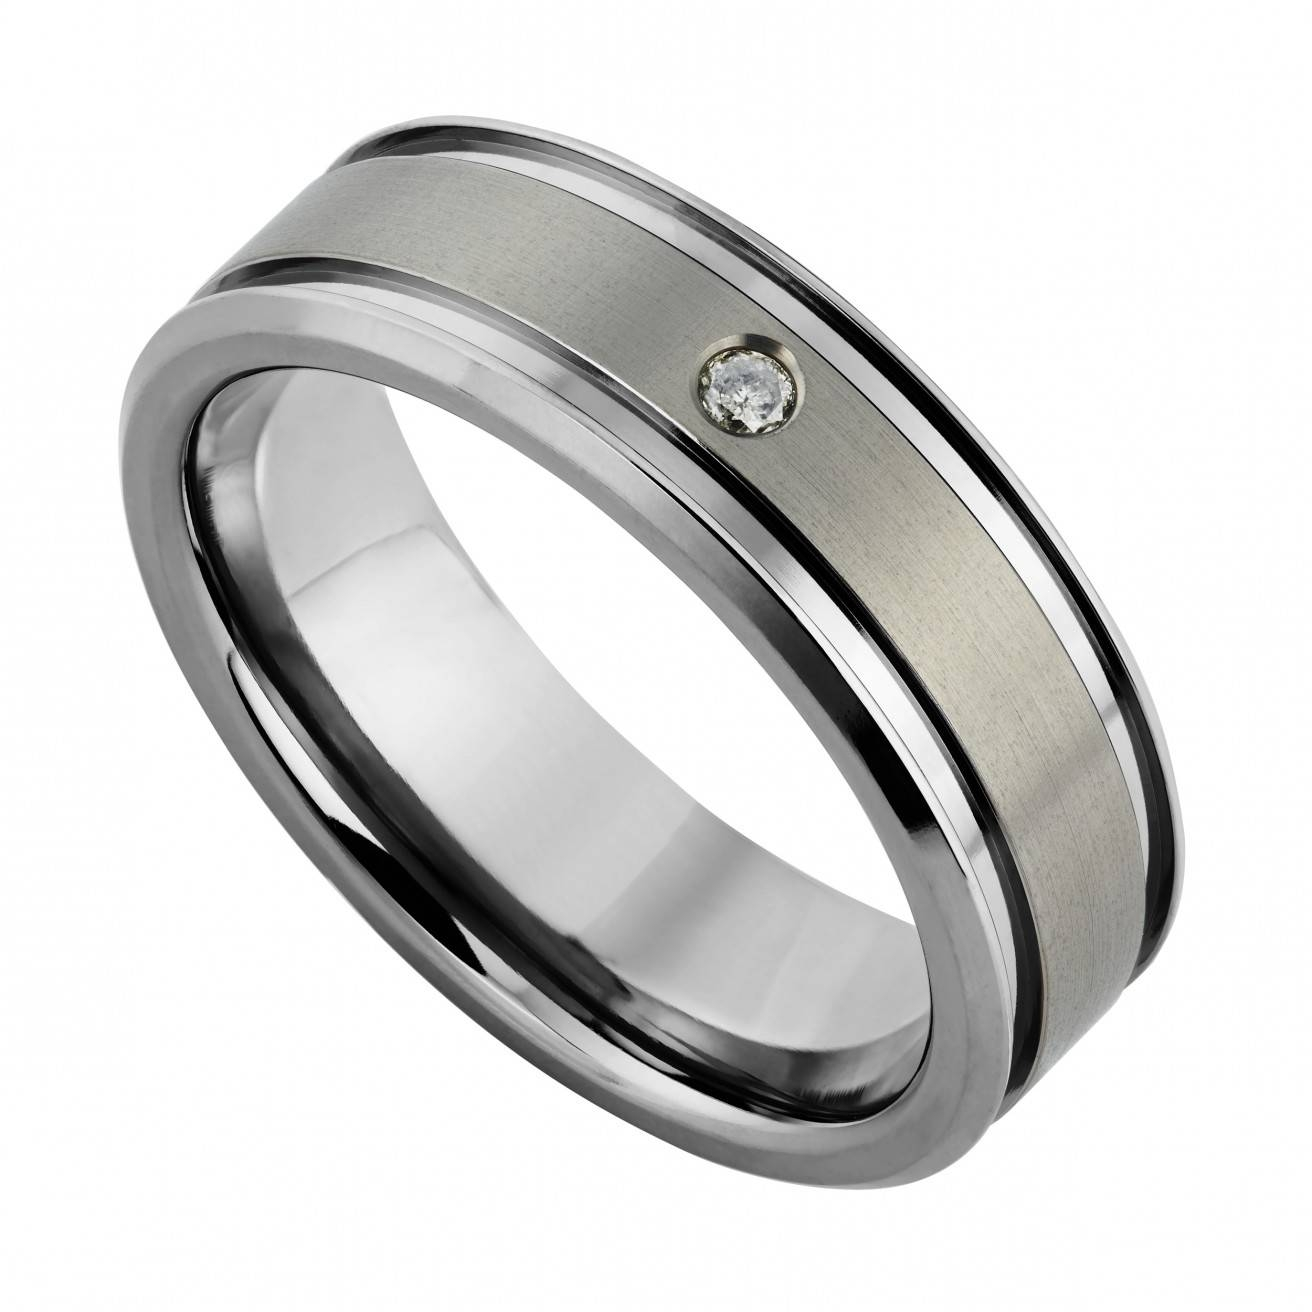 Buy A Diamond Wedding Ring Online – Fraser Hart For Platinum Diamond Mens Wedding Rings (View 11 of 15)